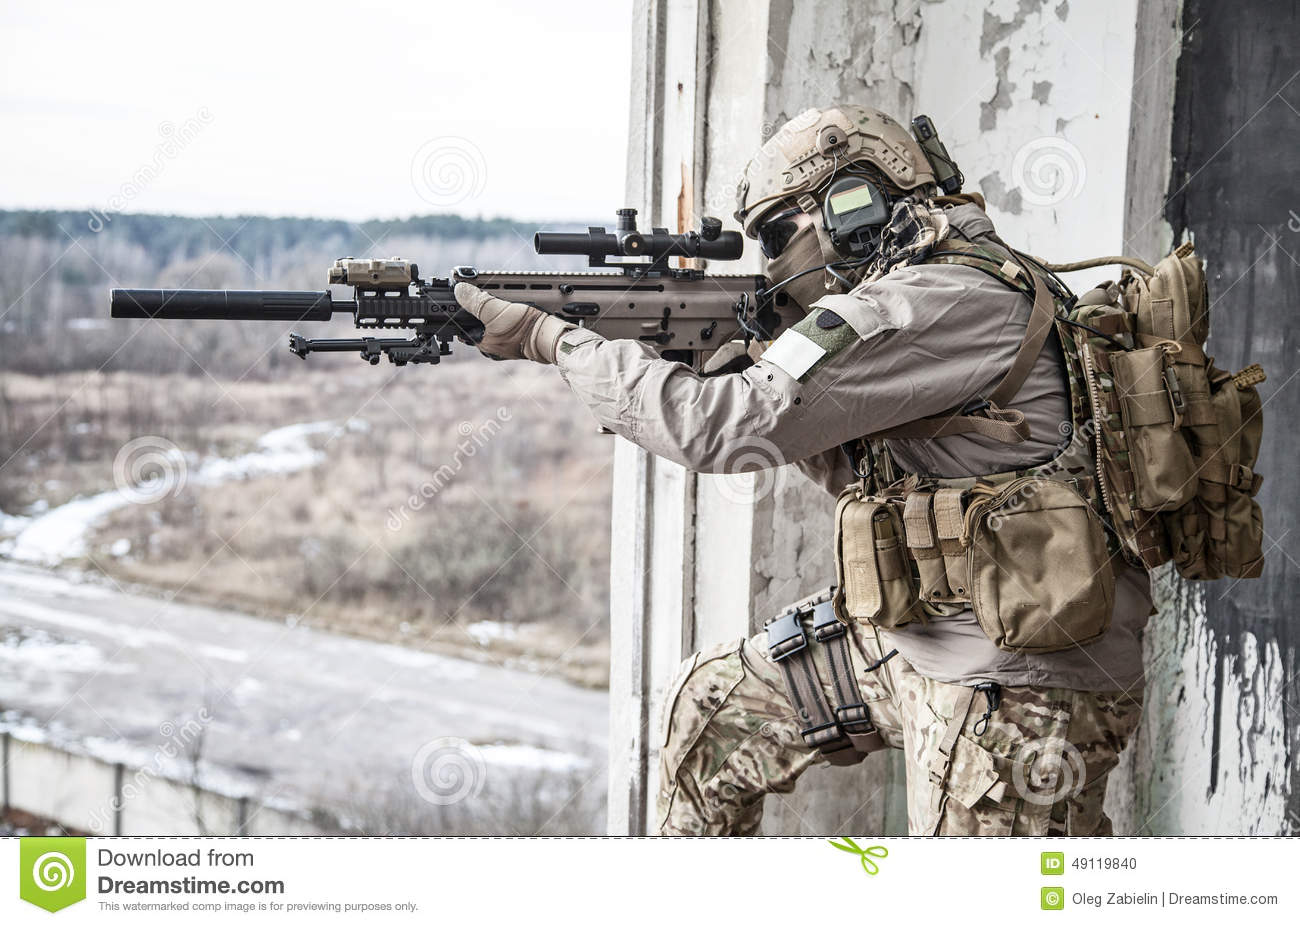 United States Army ranger during the military operation.